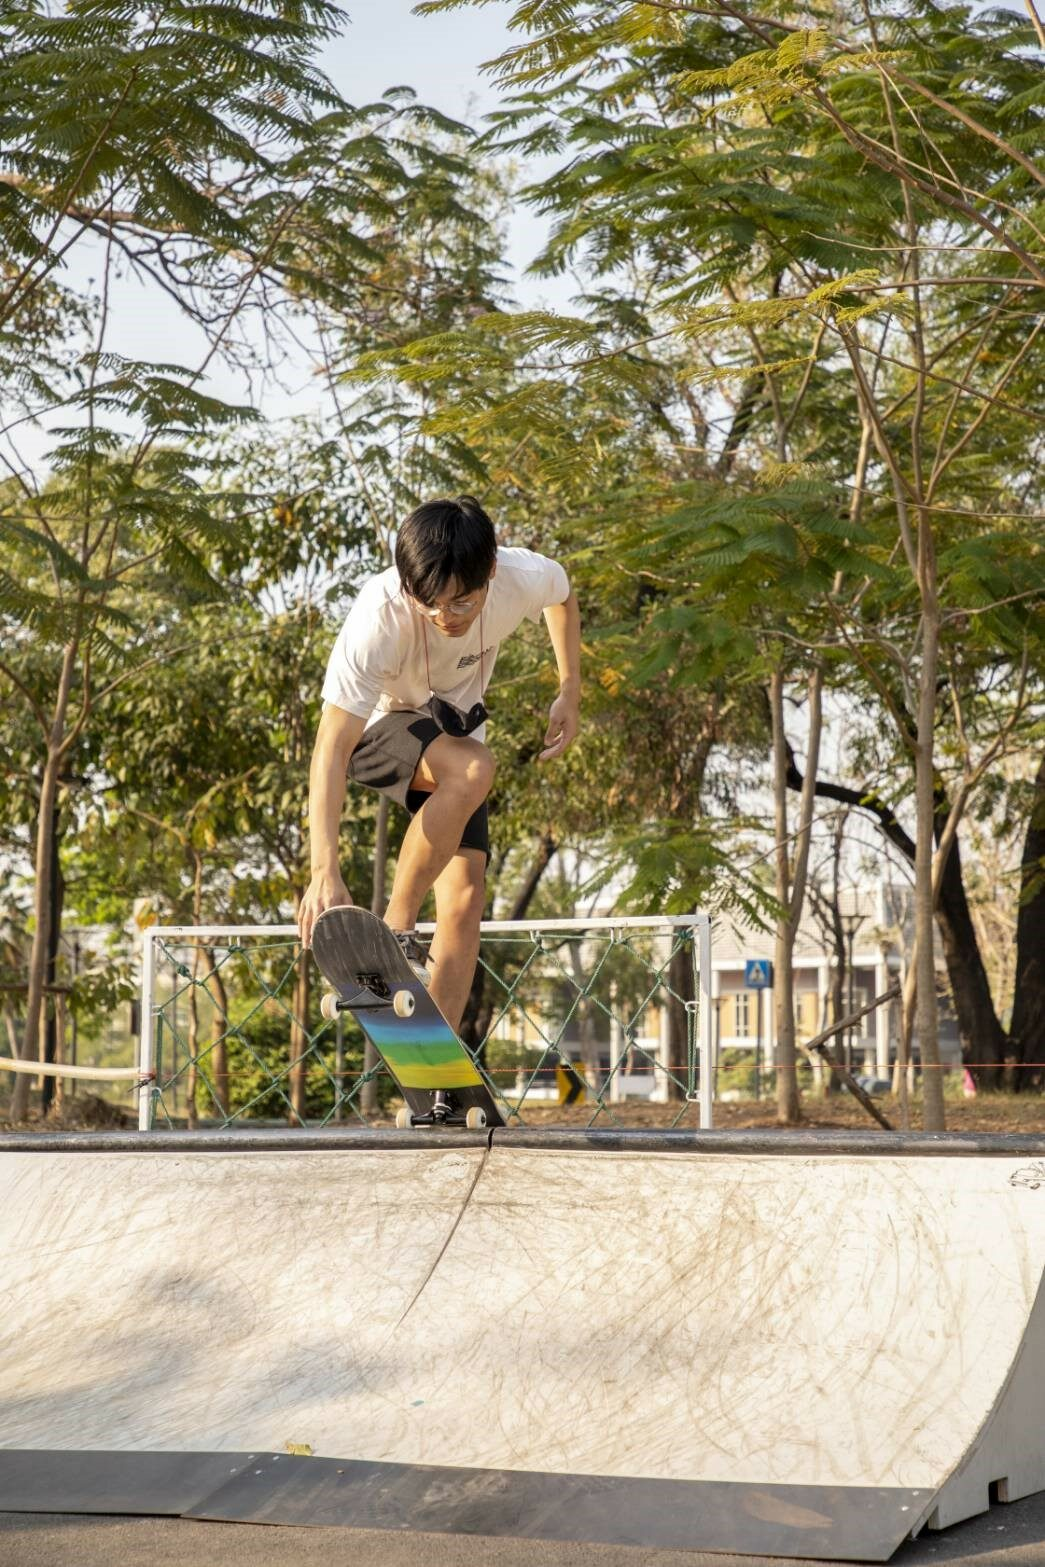 Three Recreational Spots In BKK Going For Thai Teens To Chill At